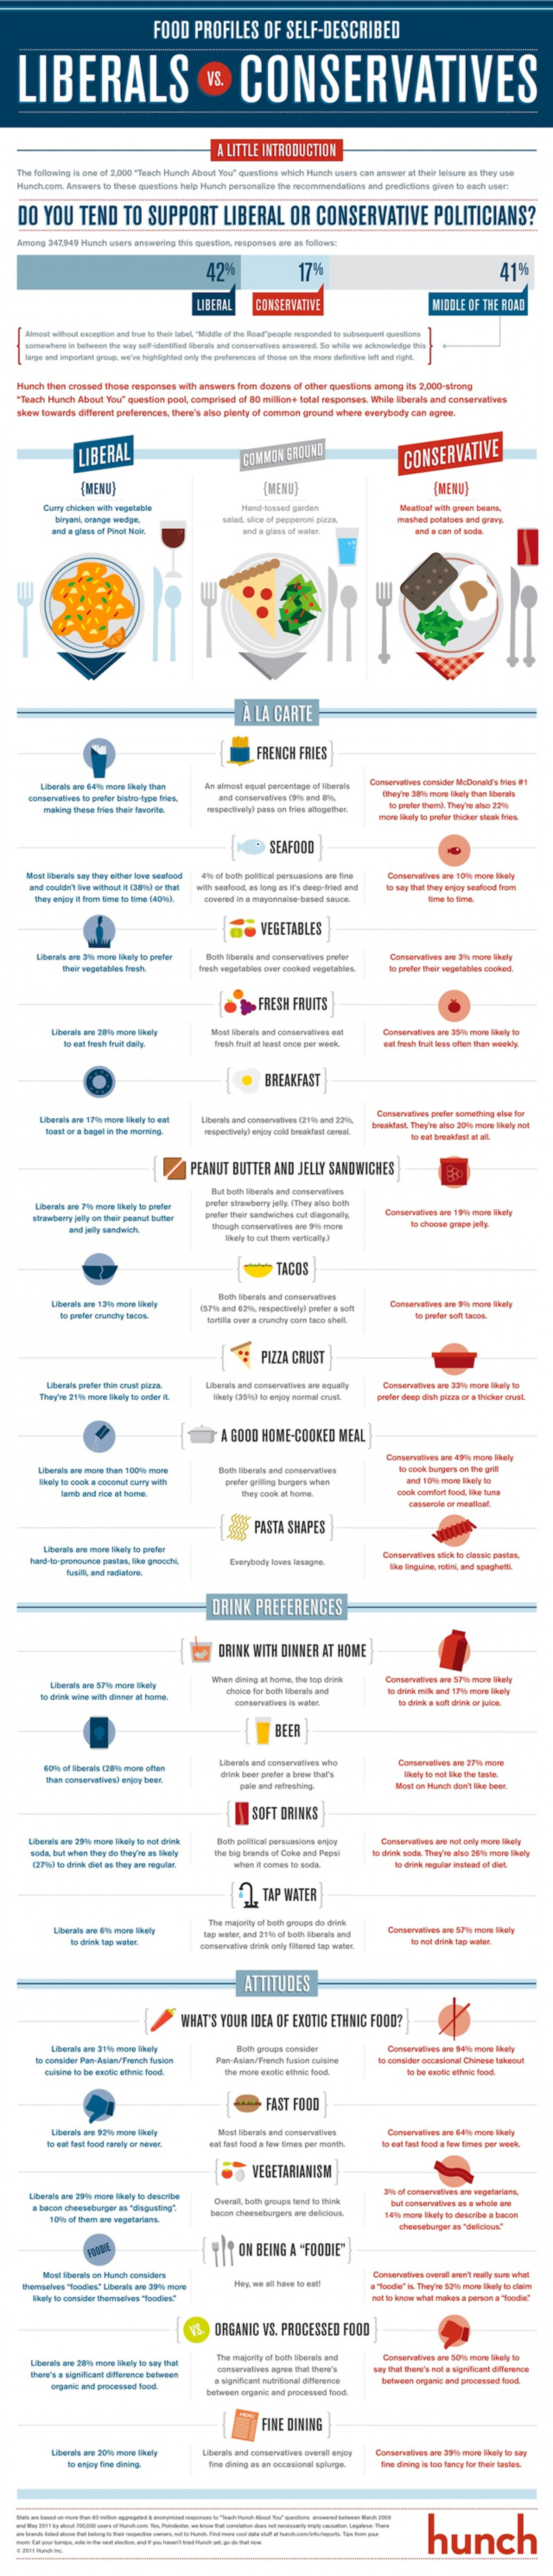 Food Profiles of Self Described Liberals and Conservatives  Infographic